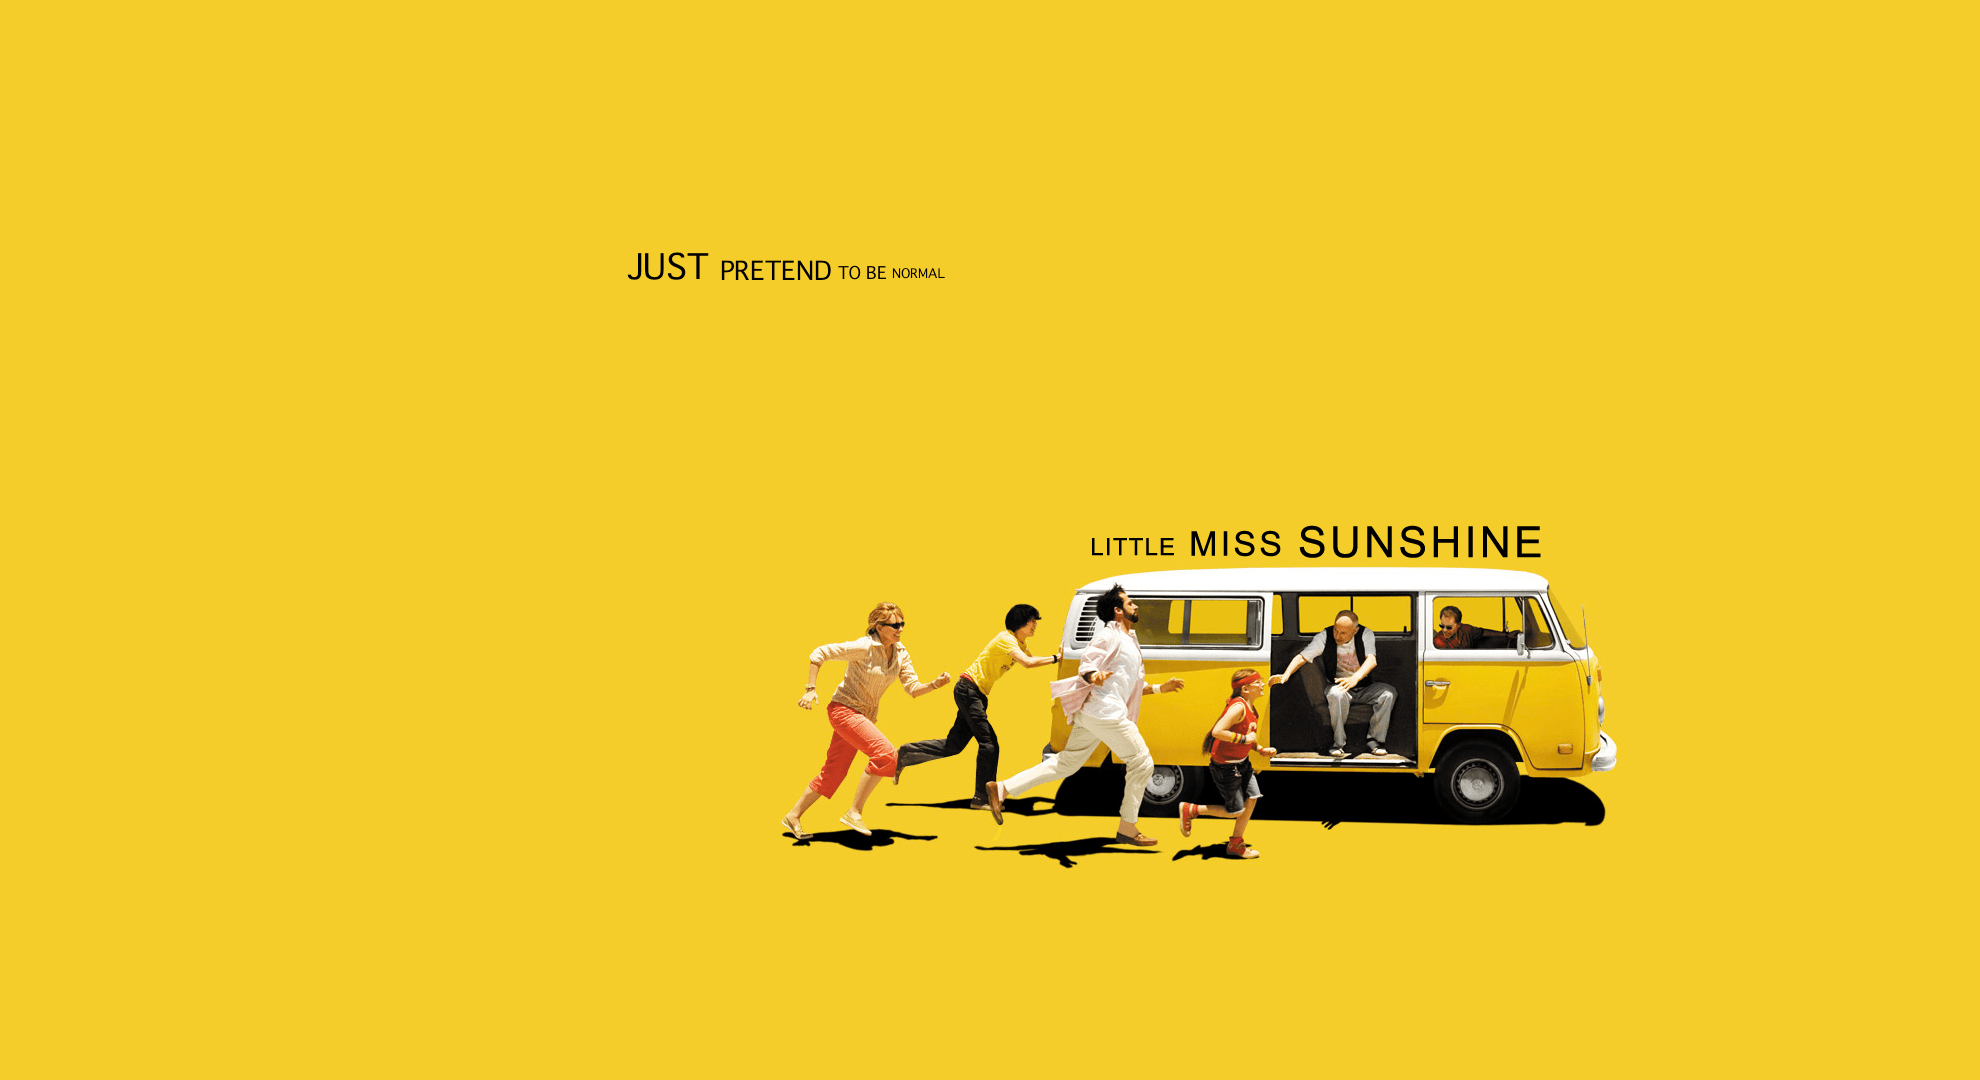 15 Little Miss Sunshine Hd Wallpapers Background Images